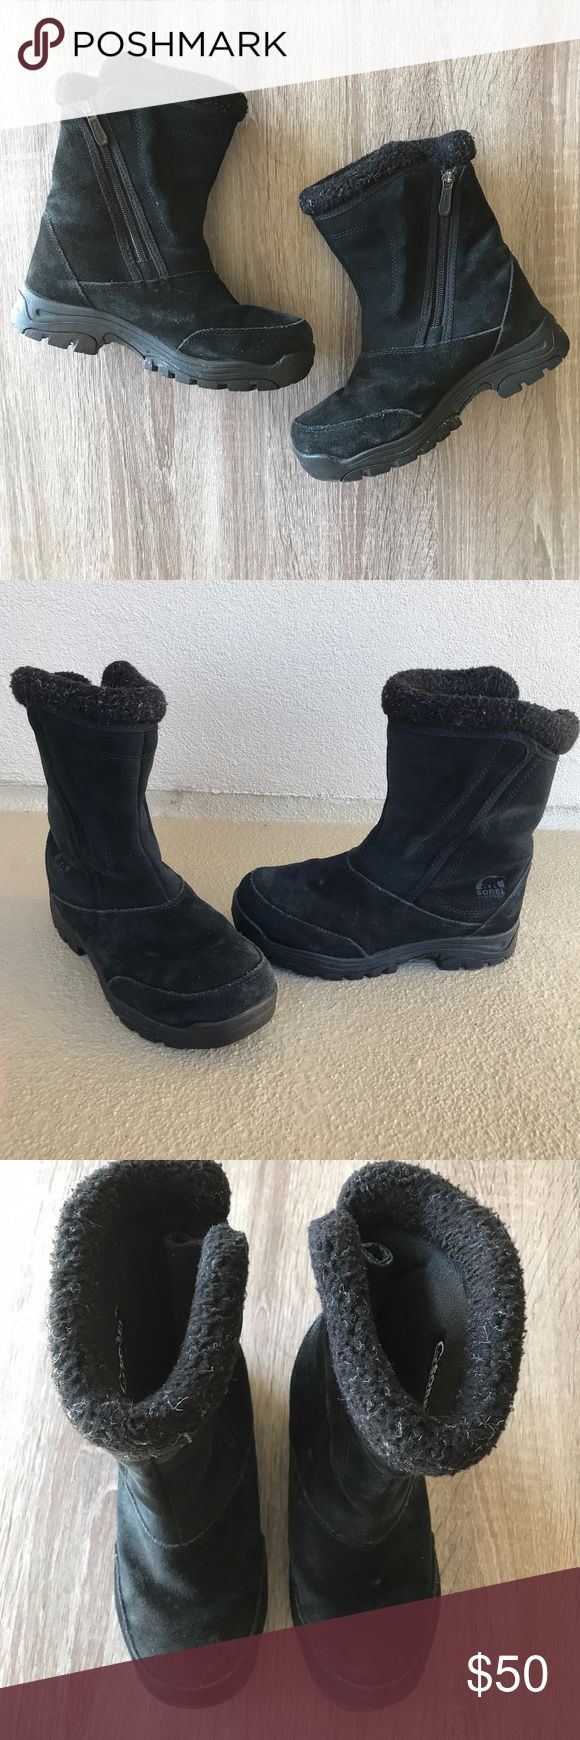 """Sorel Waterfall Black Winter Thinsulate Boots Black suede rubber bottom boots from Sorel.  These boots have a rubber sole, are lightweight and durable, and have a 3M Thinsulate Ultra 400 insulation.  The waterproof material makes them the perfect snow boots for winter.  Great condition with minimal wear on suede and fur.  - Size 6.5 - Approx. 9.5"""" shaft - Approx. 14"""" circumference SOREL Shoes Ankle Boots & Booties"""